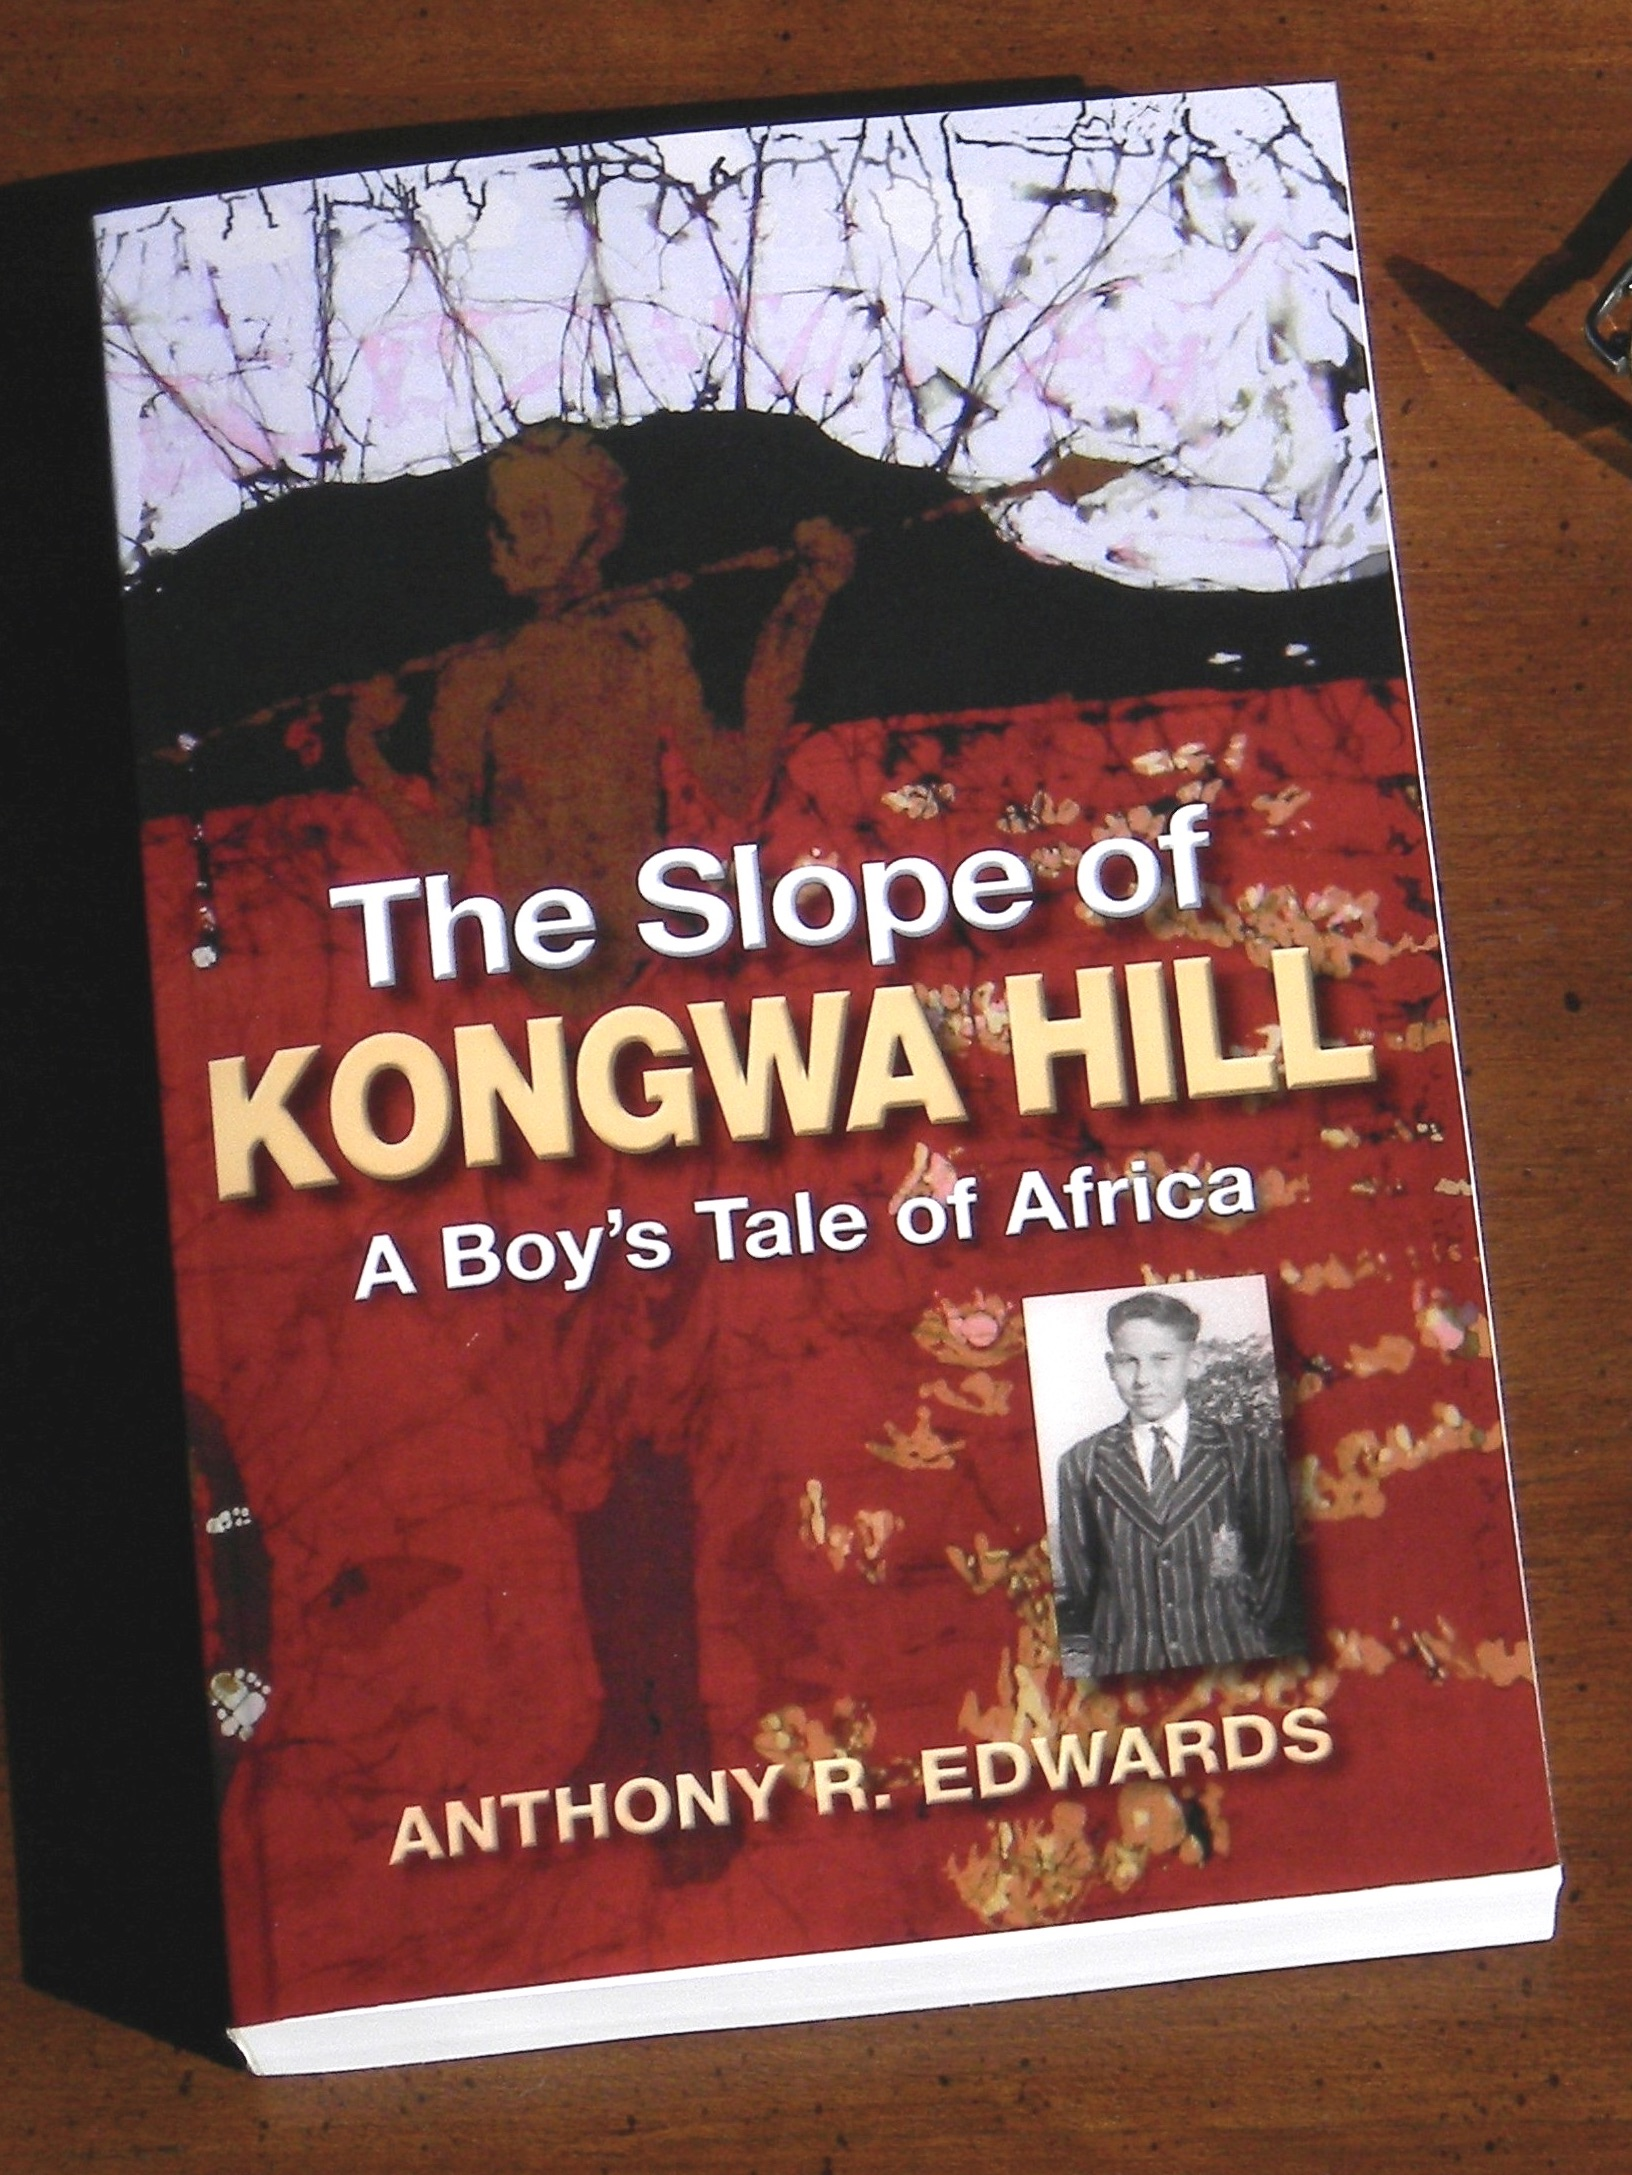 The Slope of Kongwa Hill by Tony Edwards